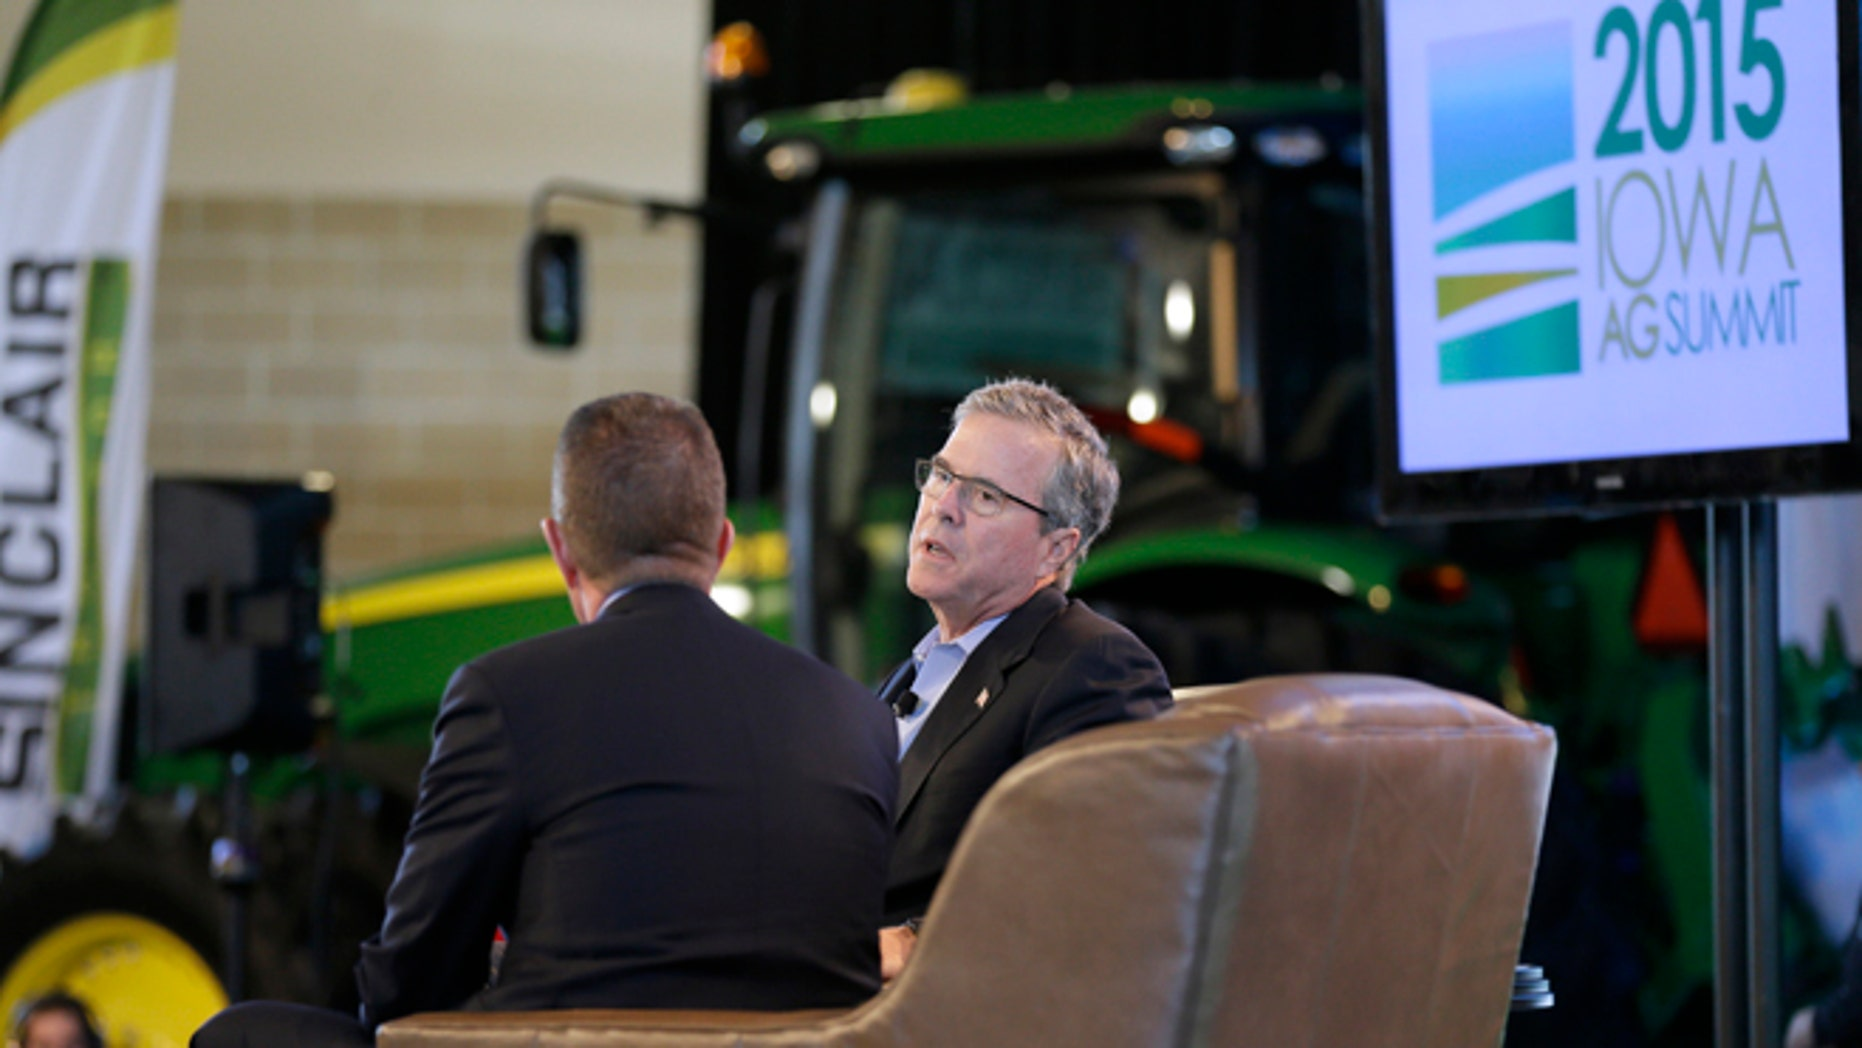 In this March 7, 2015, photo, former Florida Gov. Jeb Bush is interviewed by host Bruce Rastetter, left, during the Iowa Agriculture Summit in Des Moines, Iowa. After a flurry of fundraising, formal speeches about economics and global affairs Bush got down to business this weekend appearing at the Pizza Ranch in Cedar Rapids, Iowa, after a stop at the Agricultural Summit. (AP Photo/Charlie Neibergall)